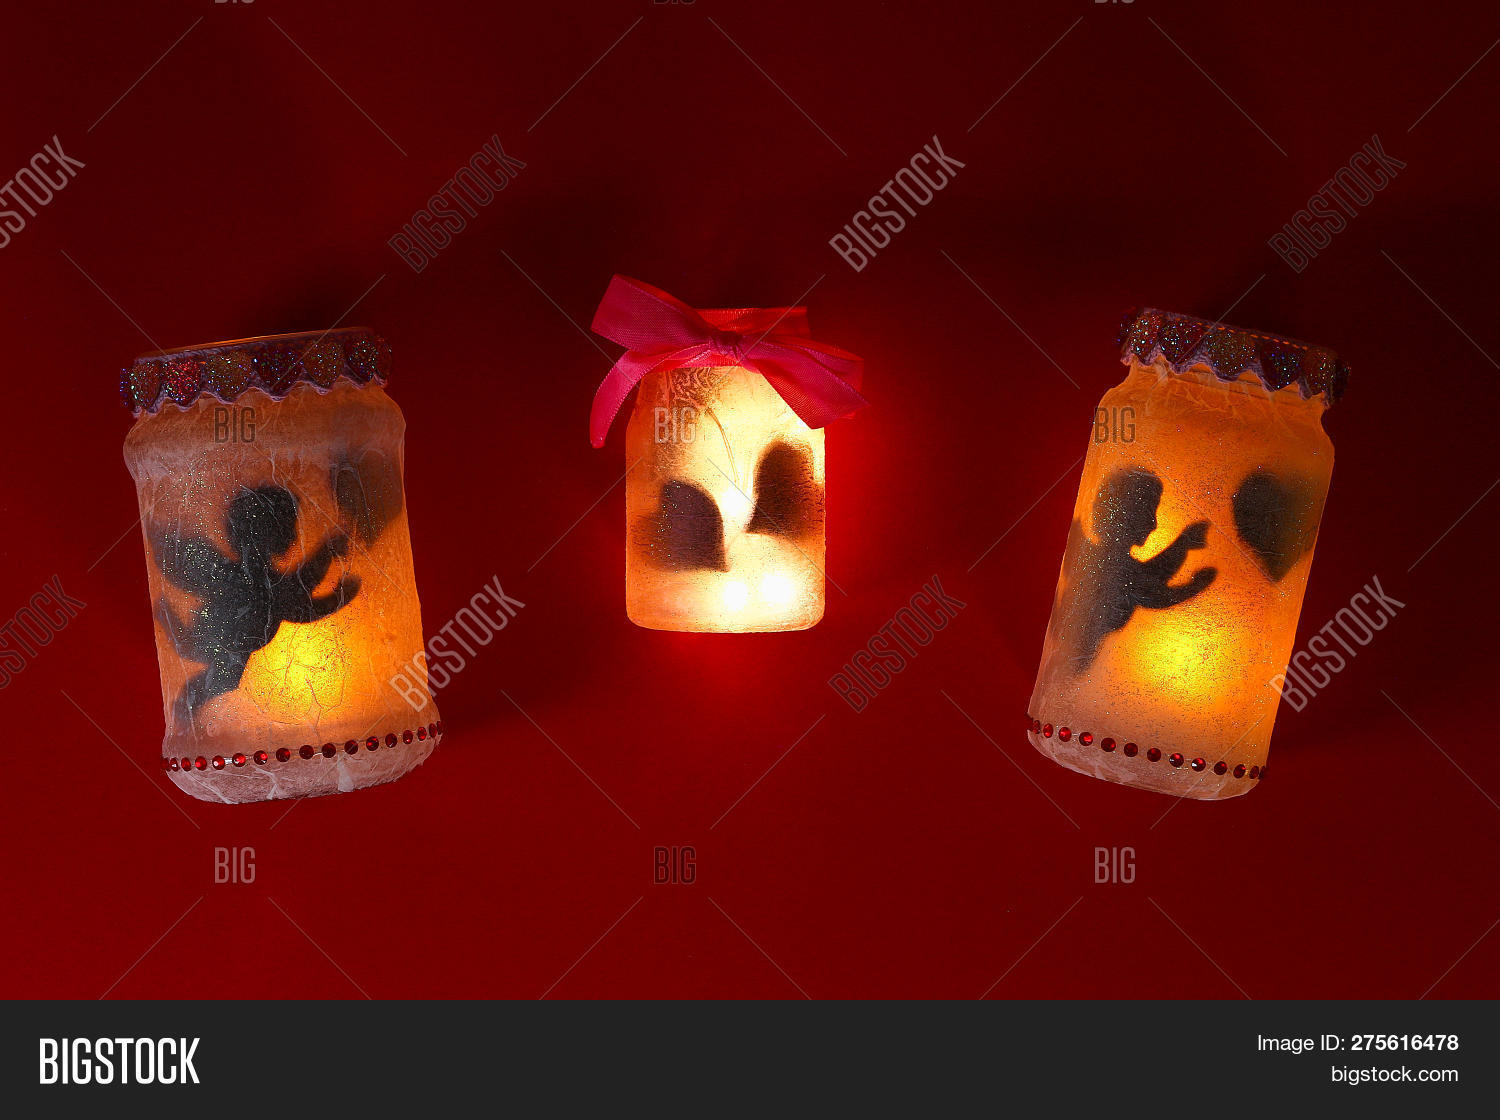 Diy Fairy Jar On Red Image Photo Free Trial Bigstock